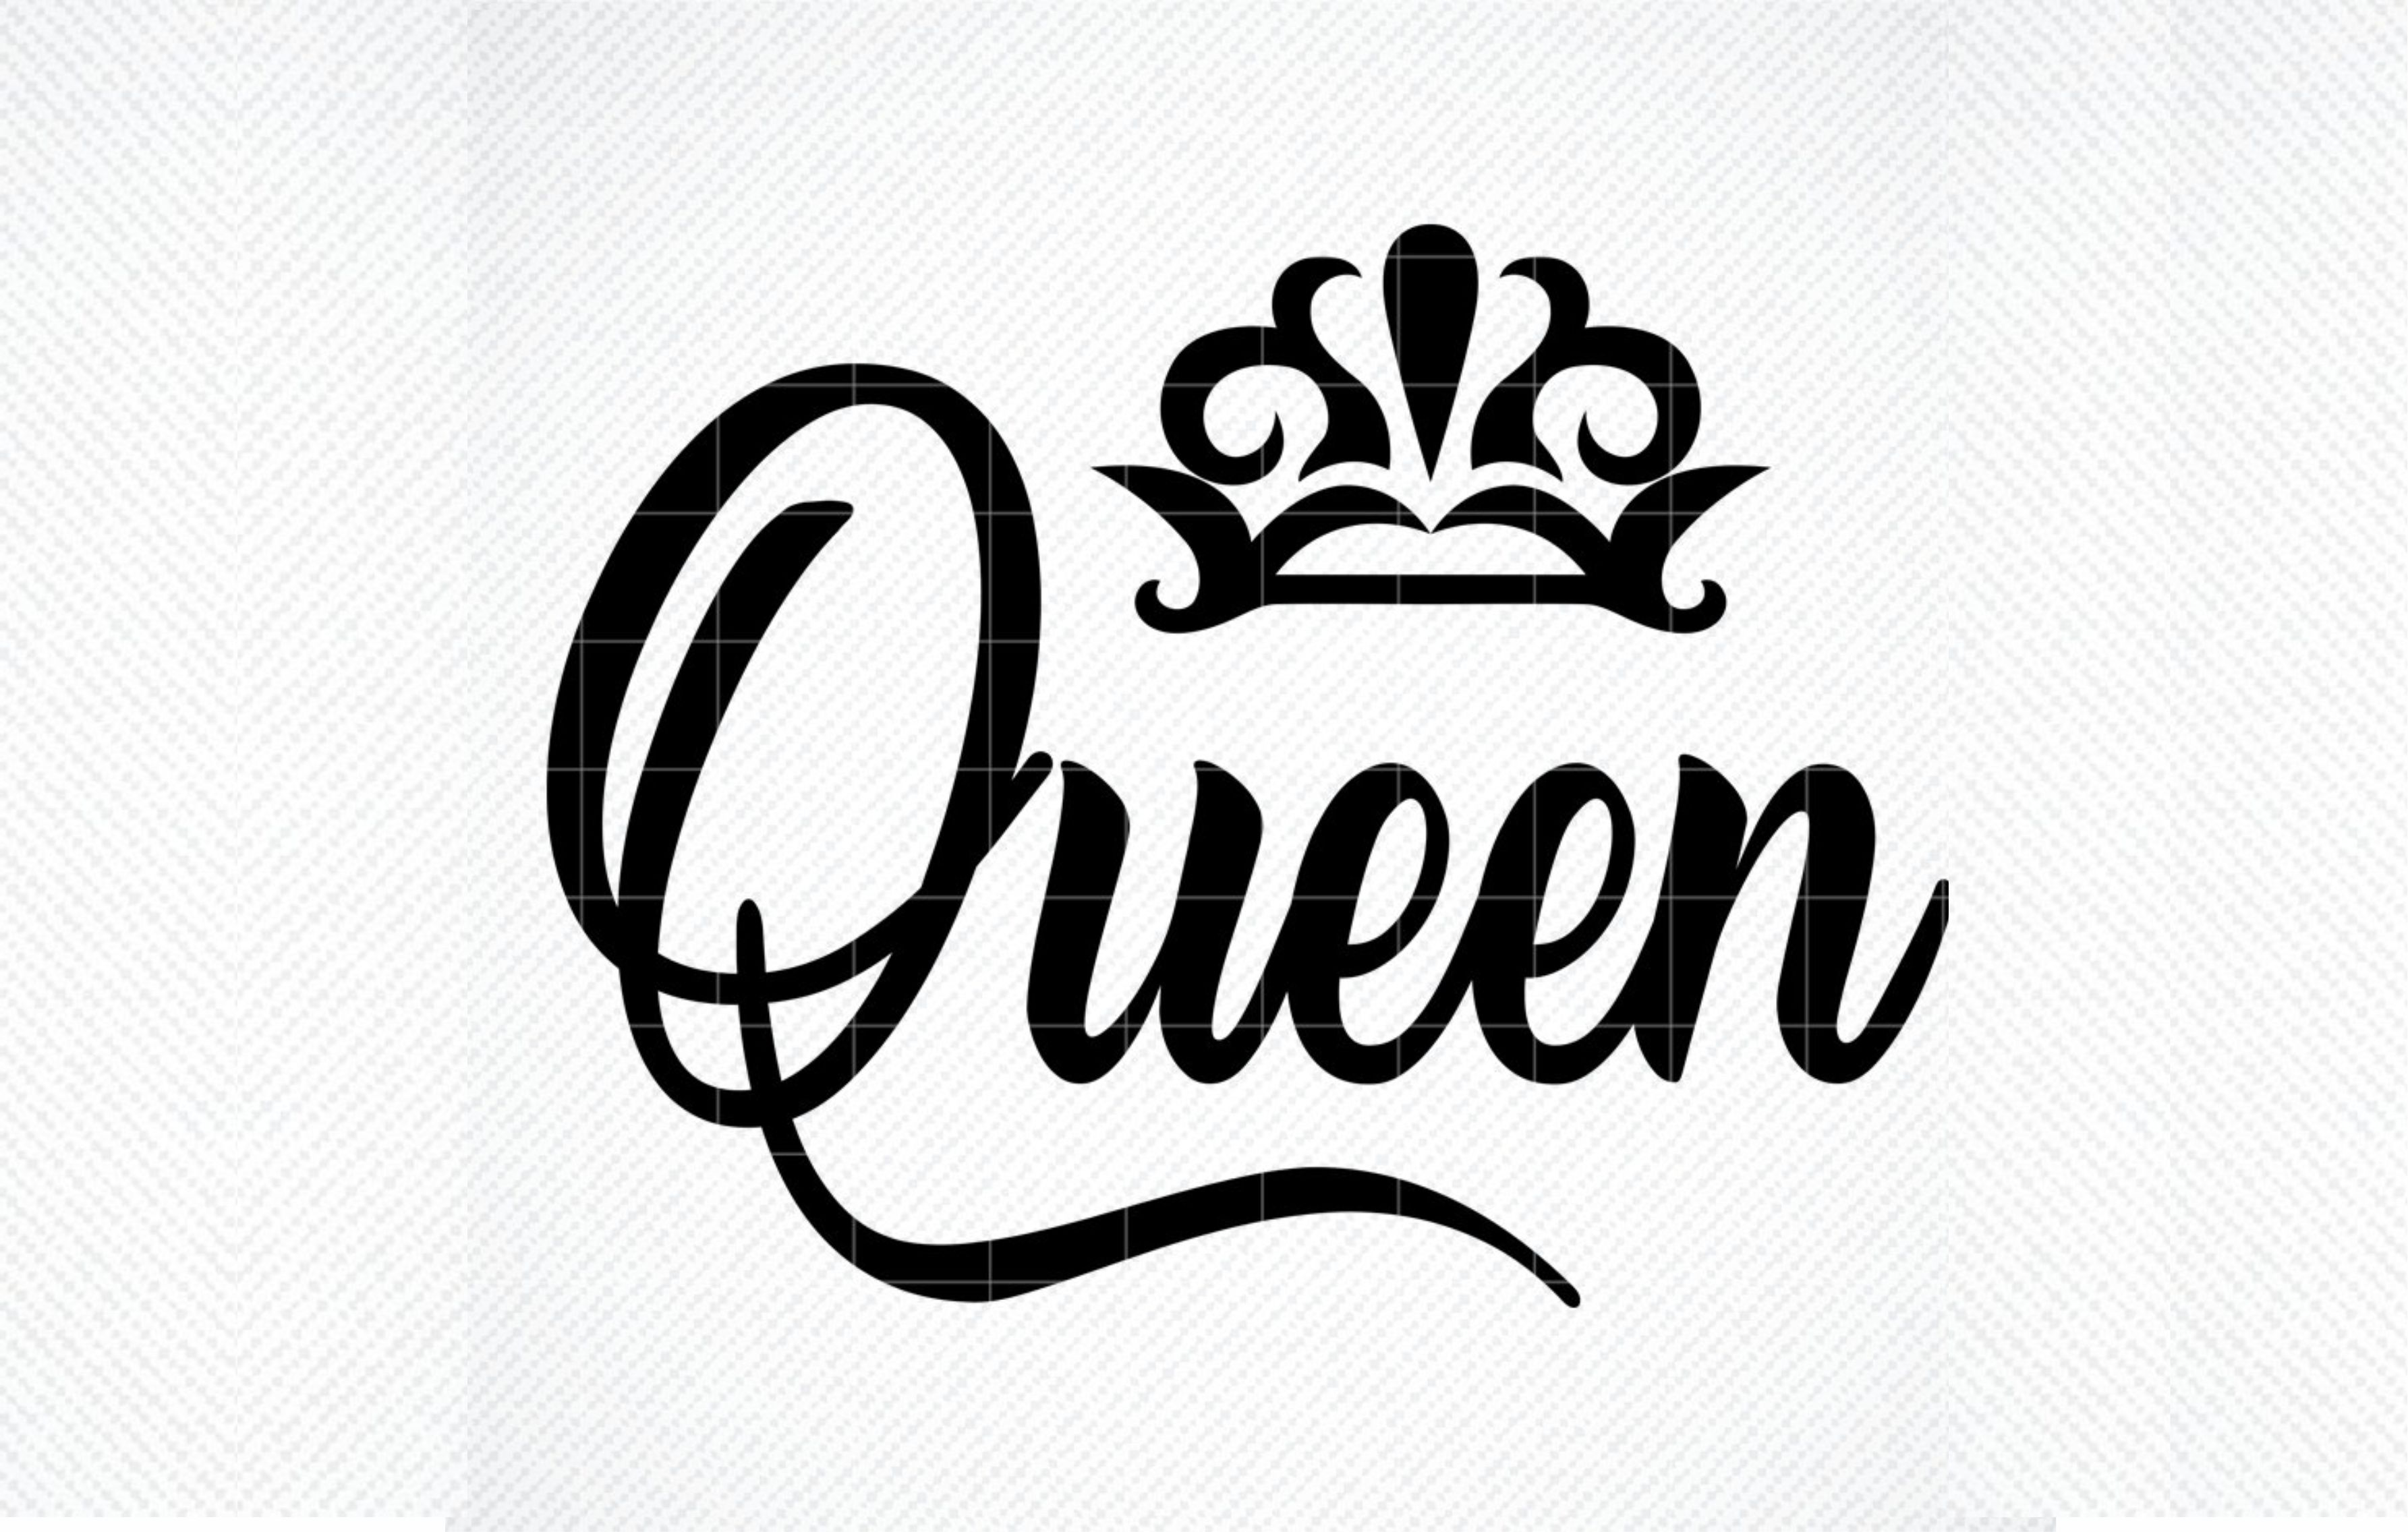 Download Free Queen File Queen Quote Cut File Graphic By Svg Den Creative for Cricut Explore, Silhouette and other cutting machines.